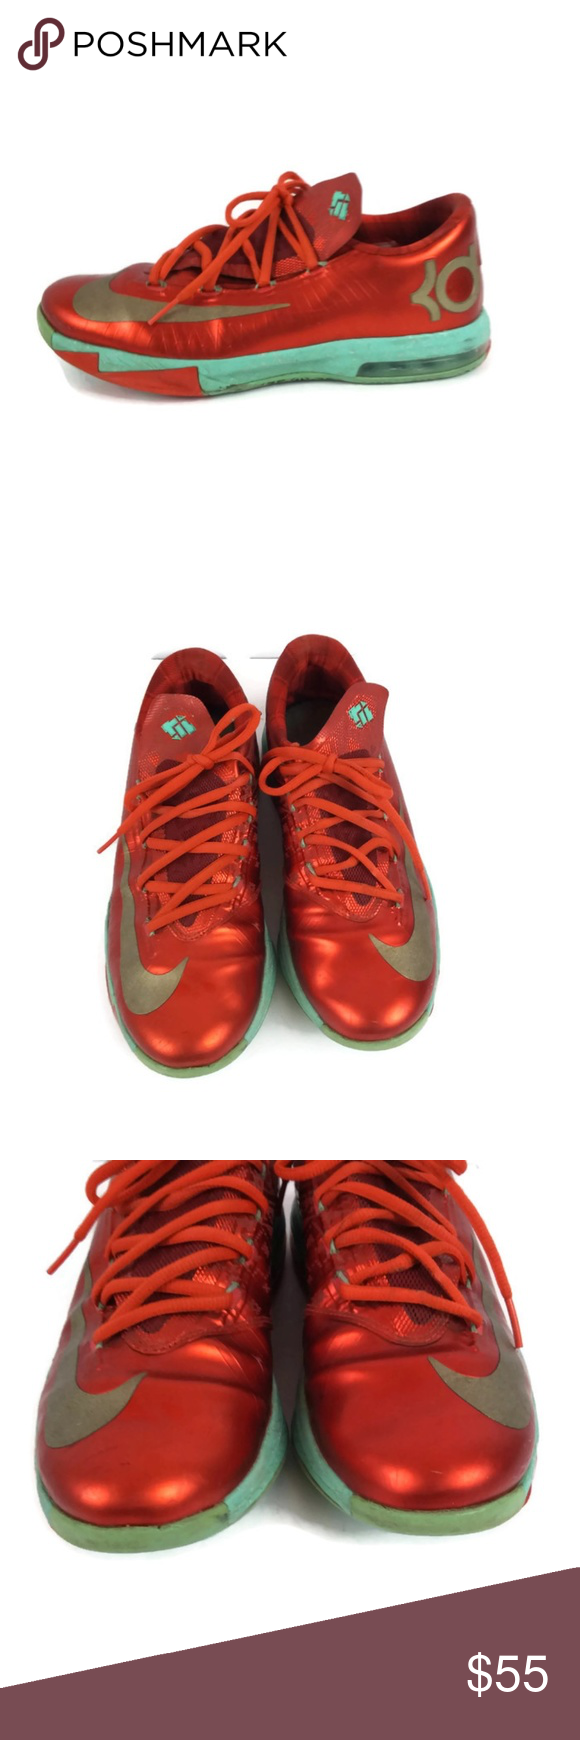 cheap for discount 2fcd9 d951f NIKE KD VI Flash Lime Atomic Red Shoes YOUTH Sport NIKE Kevin Durant KD VI  Flash